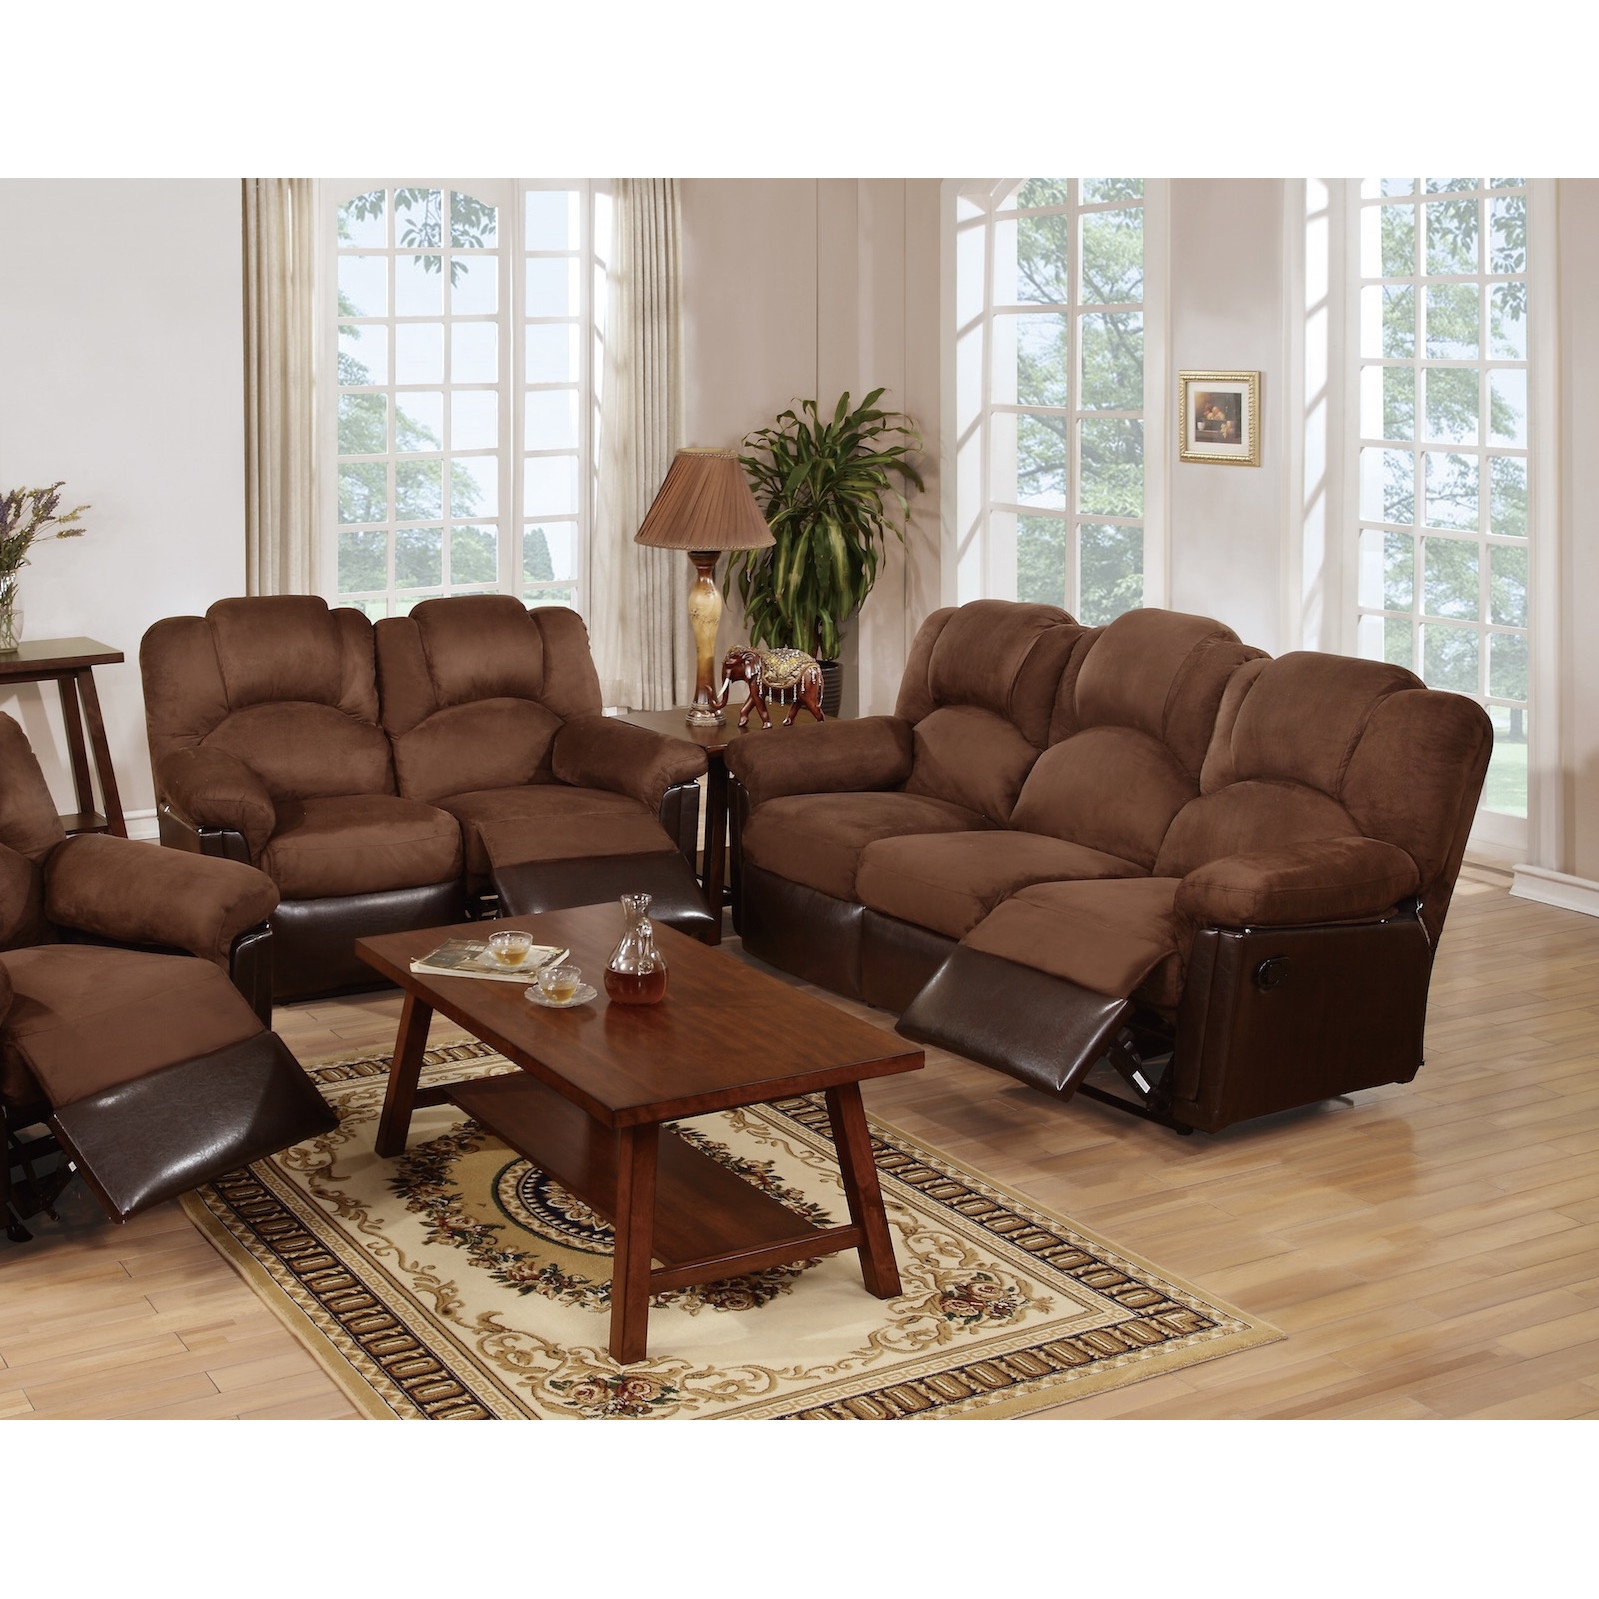 leather living room furniture sets